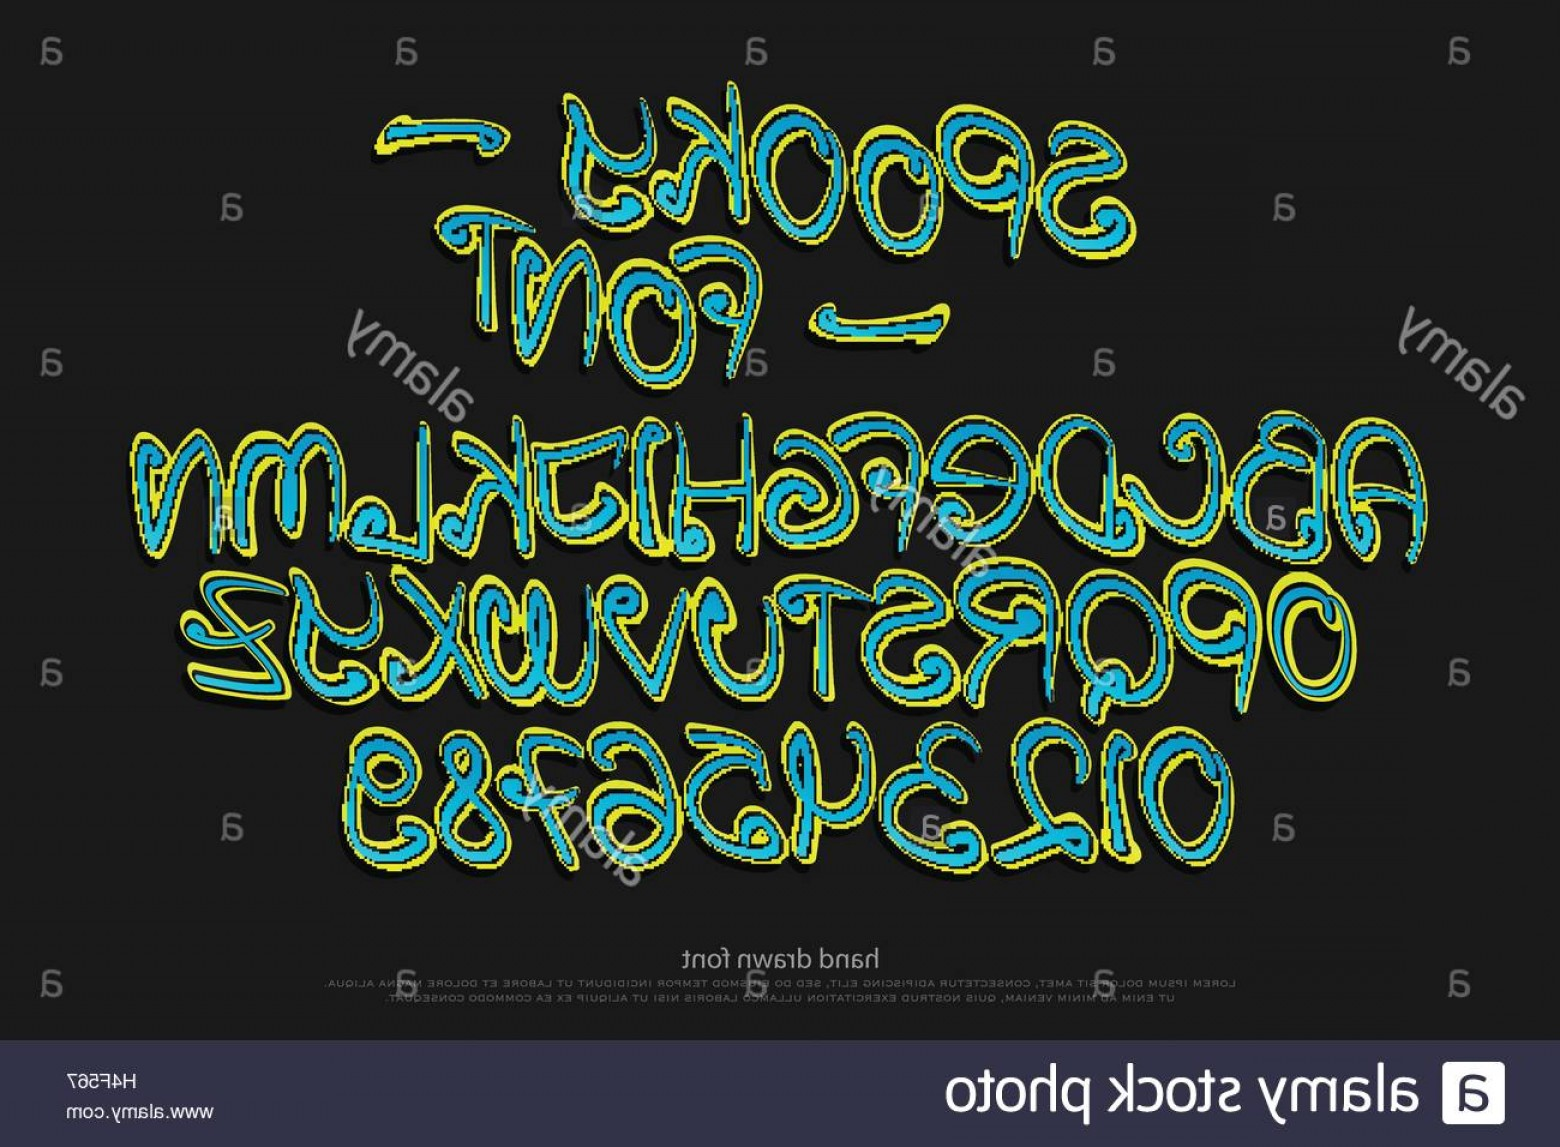 Alphabet Letters Vector Art: Stock Photo Cartoon Style Alphabet Letters And Numbers Isolated On Black Background